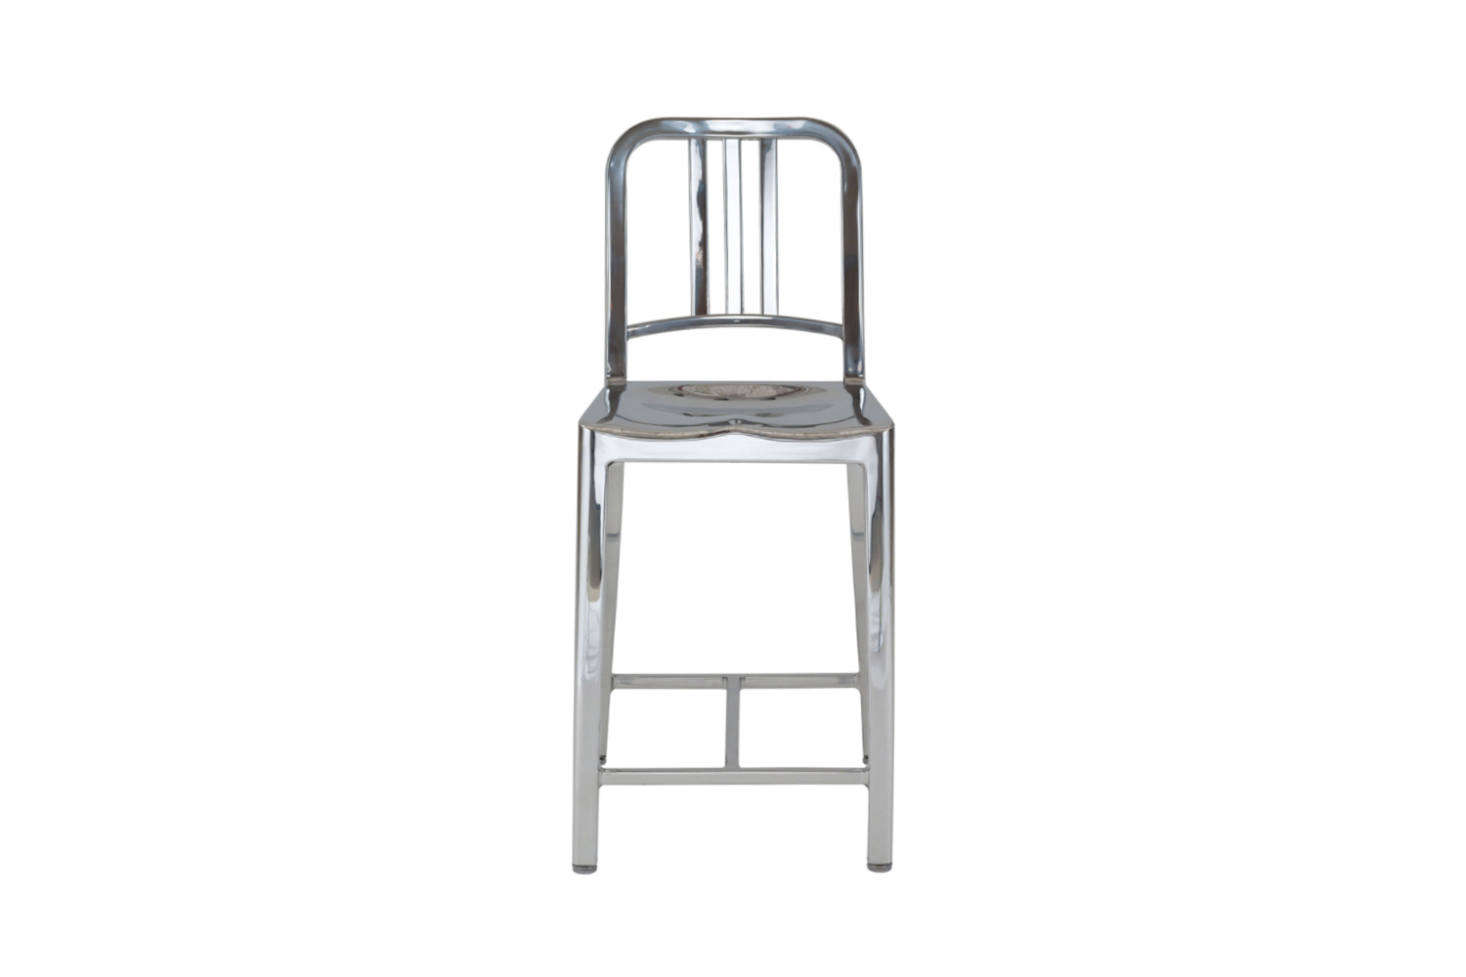 The Emeco Navy Stool, shown in Aluminum, comes in a wide range of colors; $895 at Hive.